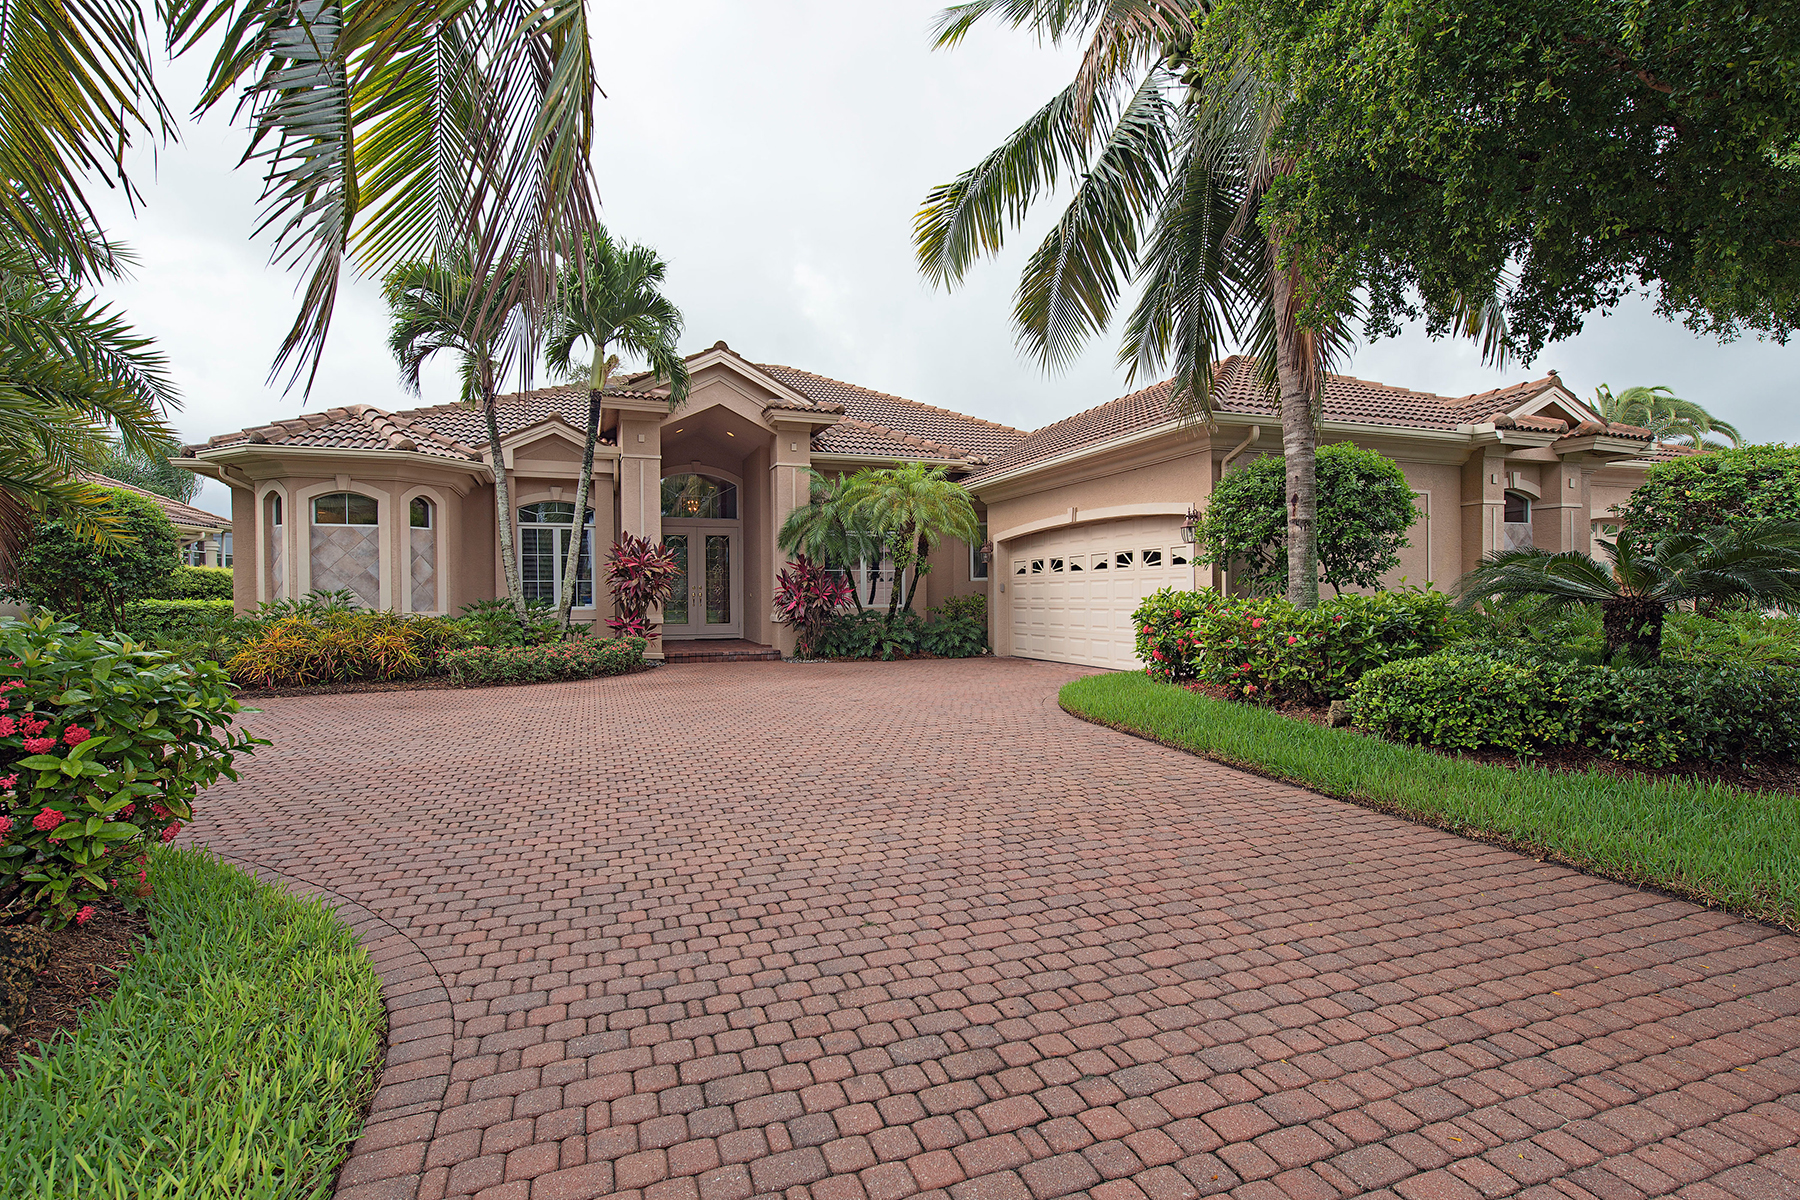 Casa Unifamiliar por un Venta en The Strand 5970 Amberwood Dr Naples, Florida, 34110 Estados Unidos